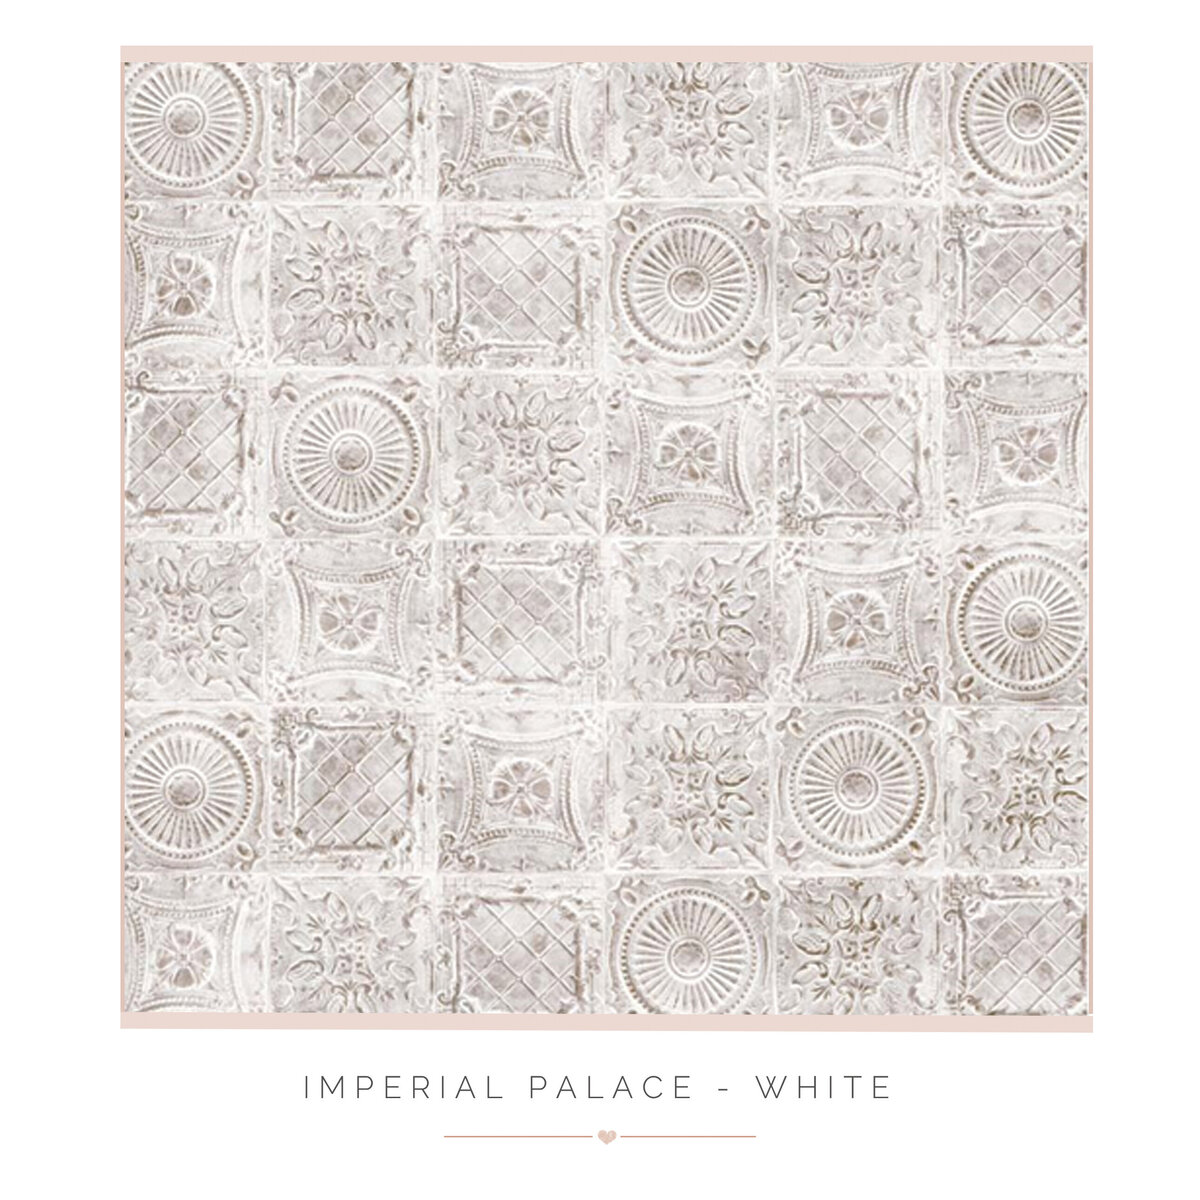 Imperial Palace - White